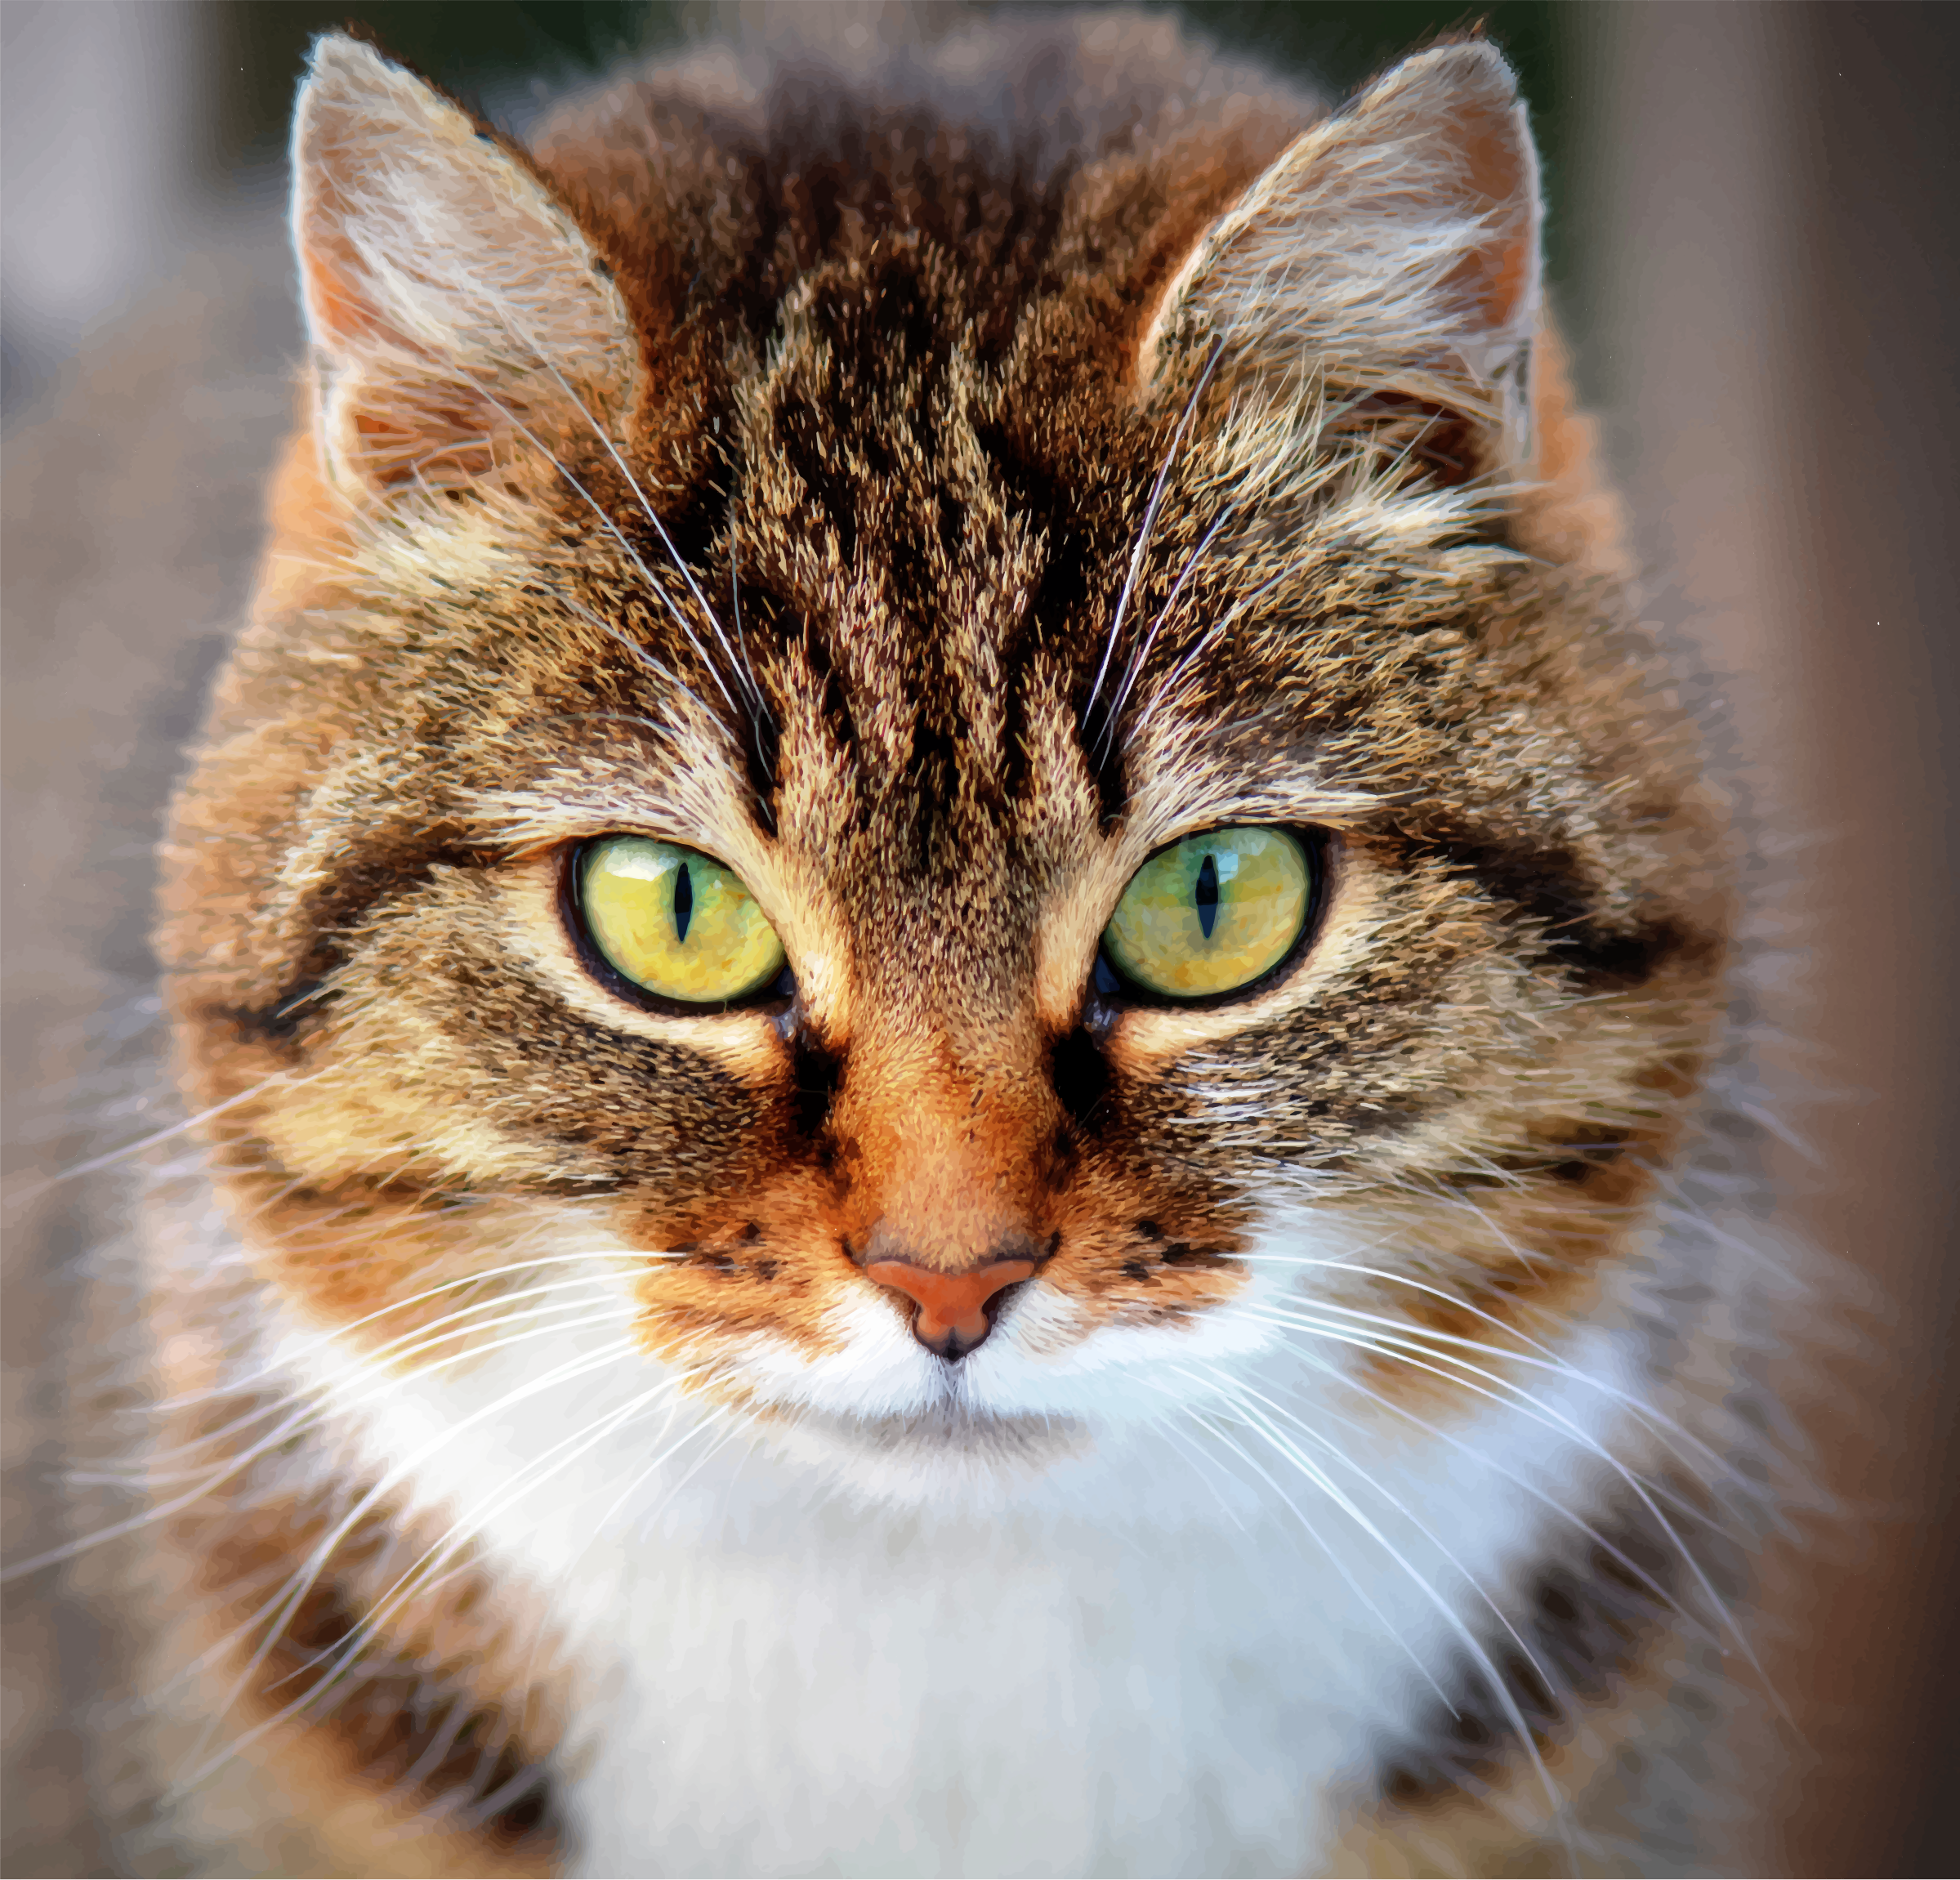 https://openclipart.org/image/2400px/svg_to_png/220591/Innocent-Cat.png